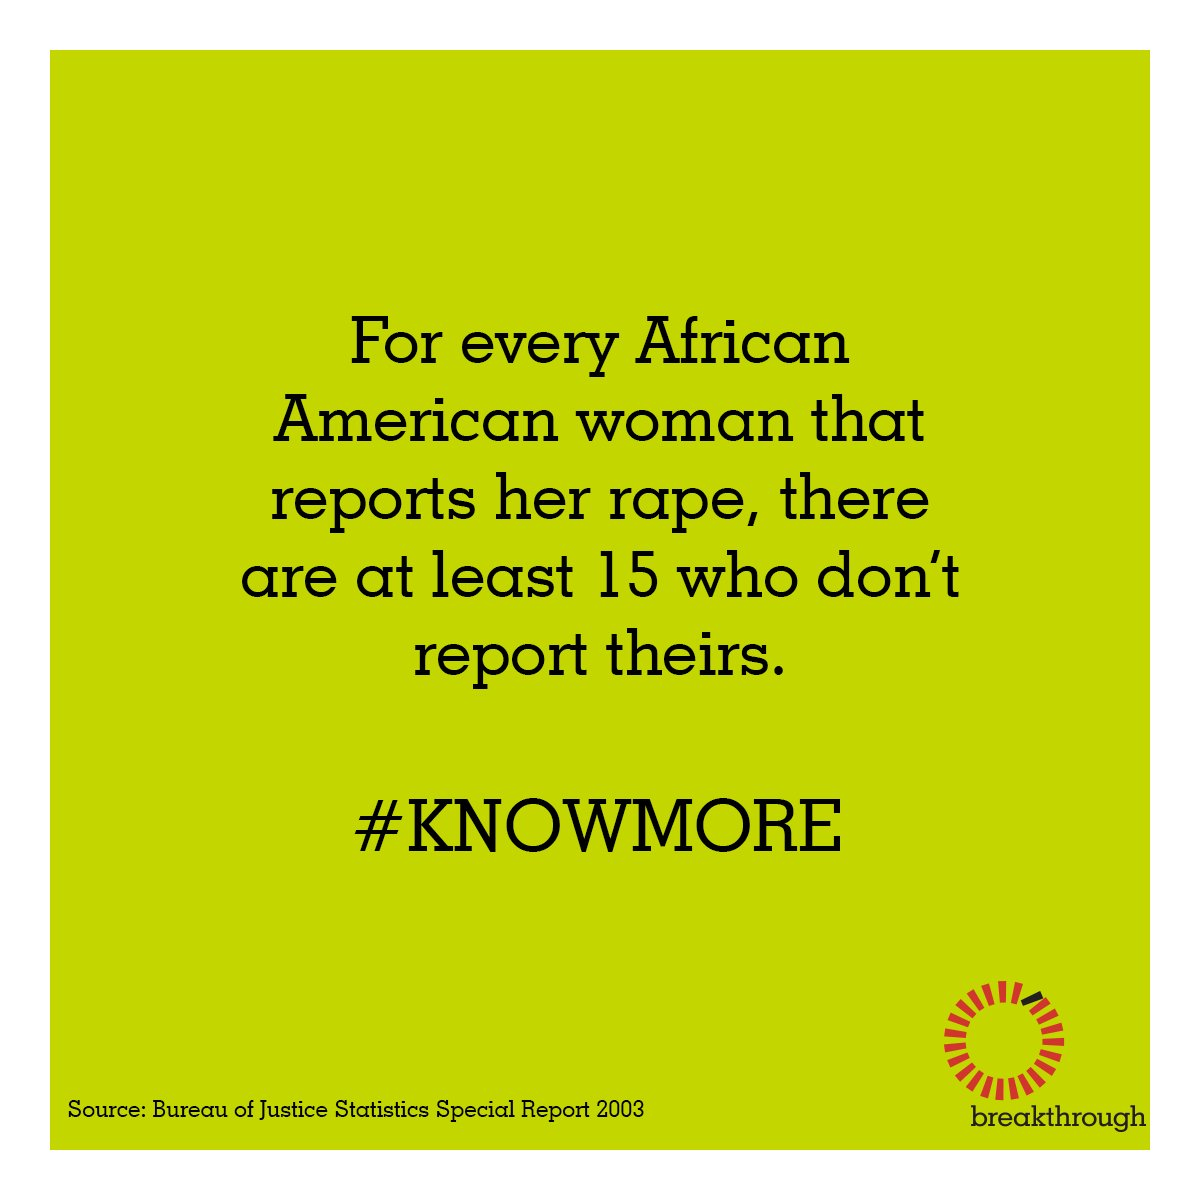 For every African American woman who reports her rape, at least 15 more don't. #BlackWomensLivesMatter #KNOWMORE https://t.co/Nx2NaTvfNS